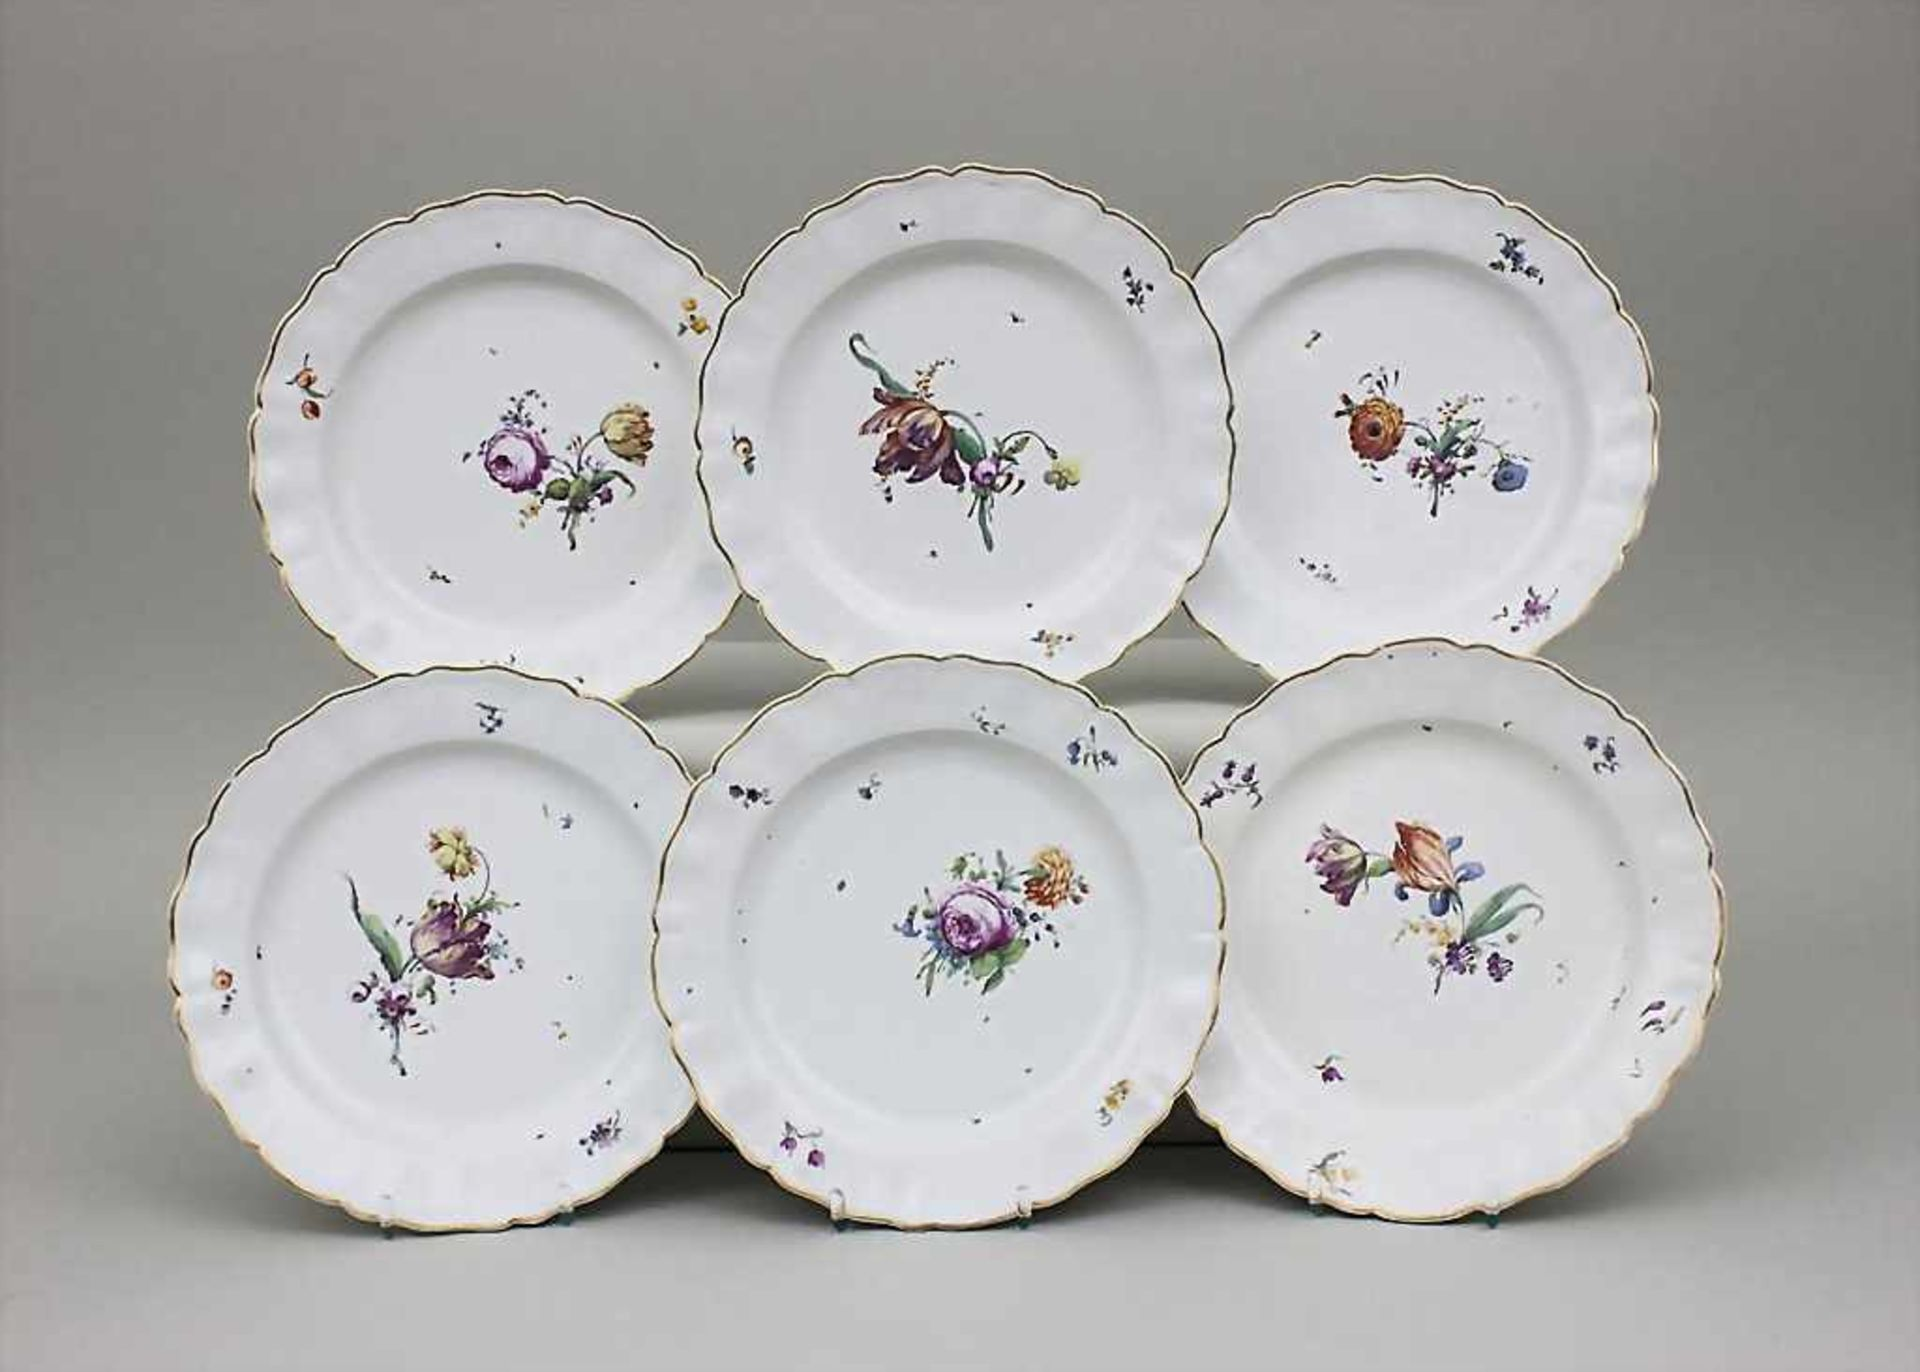 6 Teller mit Blumendekor / A Set Of 6 Dinner Plates With Flowers, Churfürstl. Mainzische Manufaktur,